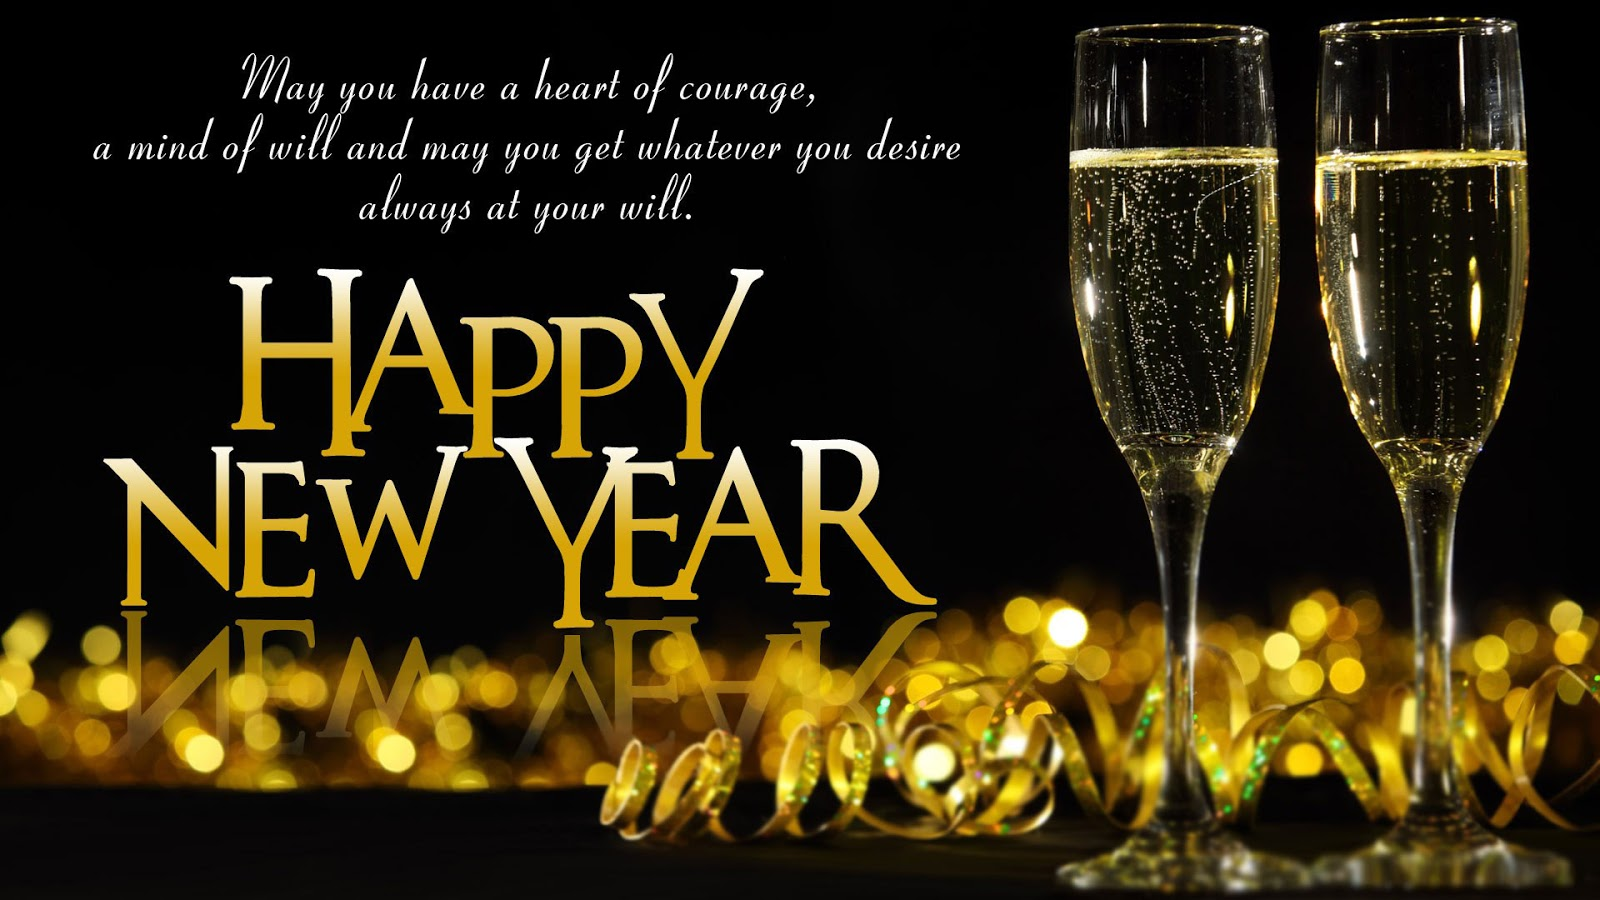 Happy New Year 2015 Picture Images